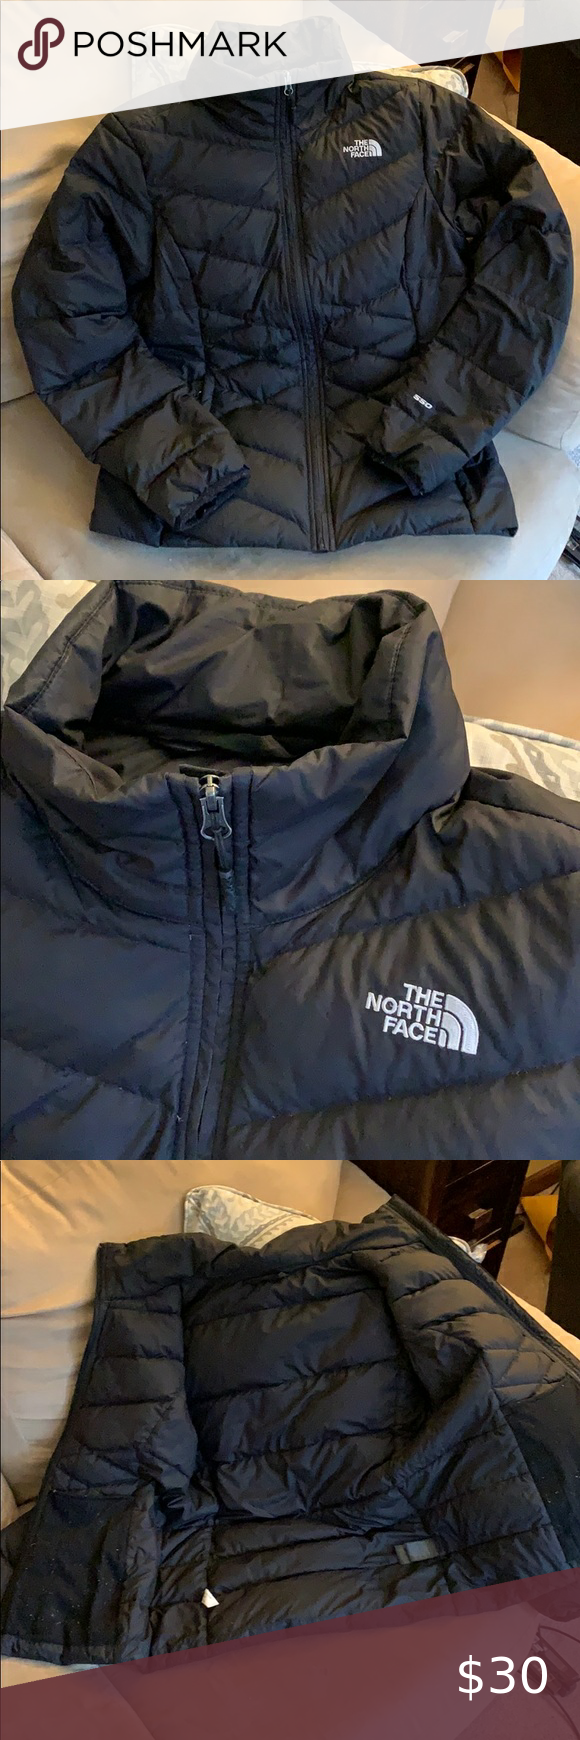 North Face Women S Jacket North Face Women North Face Jacket Womens North Face Fleece Jacket [ 1740 x 580 Pixel ]